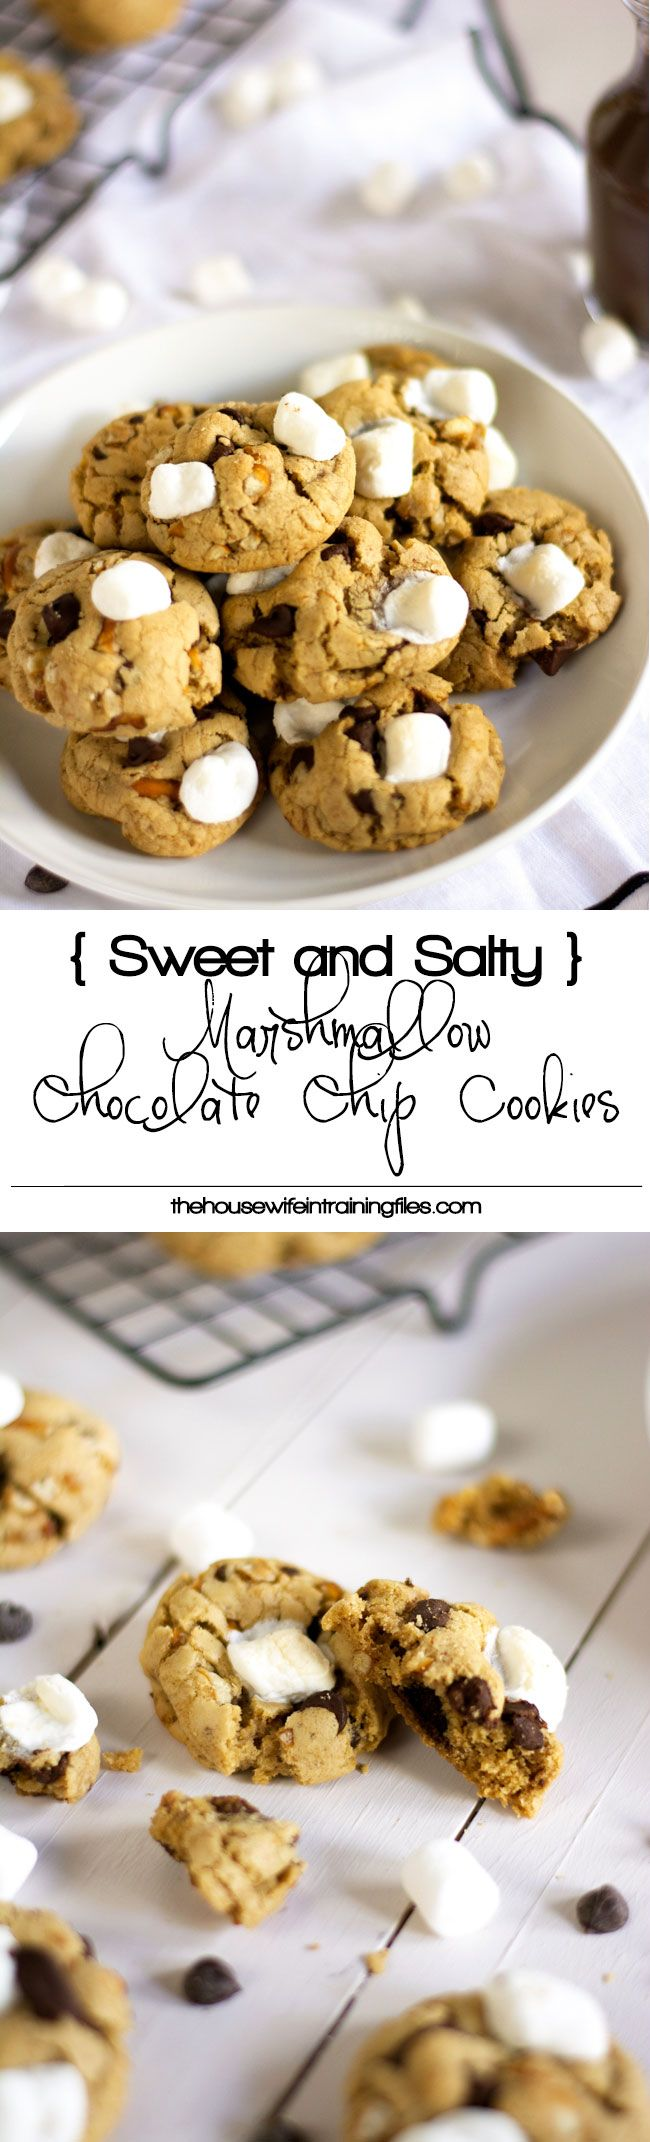 Best of both worlds in this sweet and salty treat! Marshmallow Chocolate Chip Cookie is chewy, chocoately and made healthier with coconut oil!